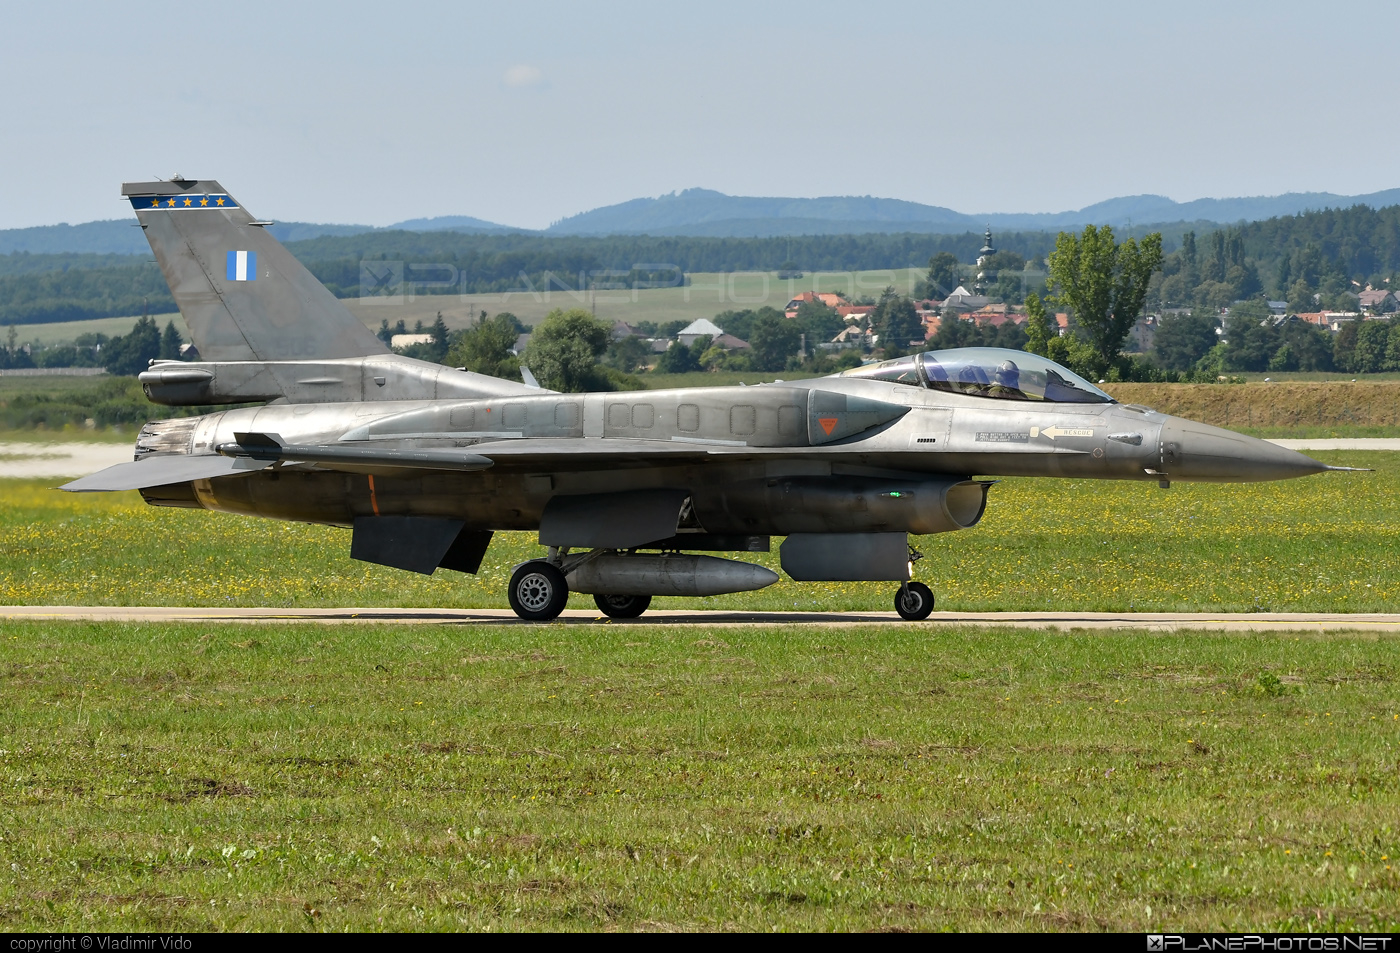 Lockheed Martin F-16CJ Fighting Falcon - 506 operated by Polemikí Aeroporía (Hellenic Air Force) #f16 #f16cj #fightingfalcon #hellenicairforce #lockheedmartin #polemikiaeroporia